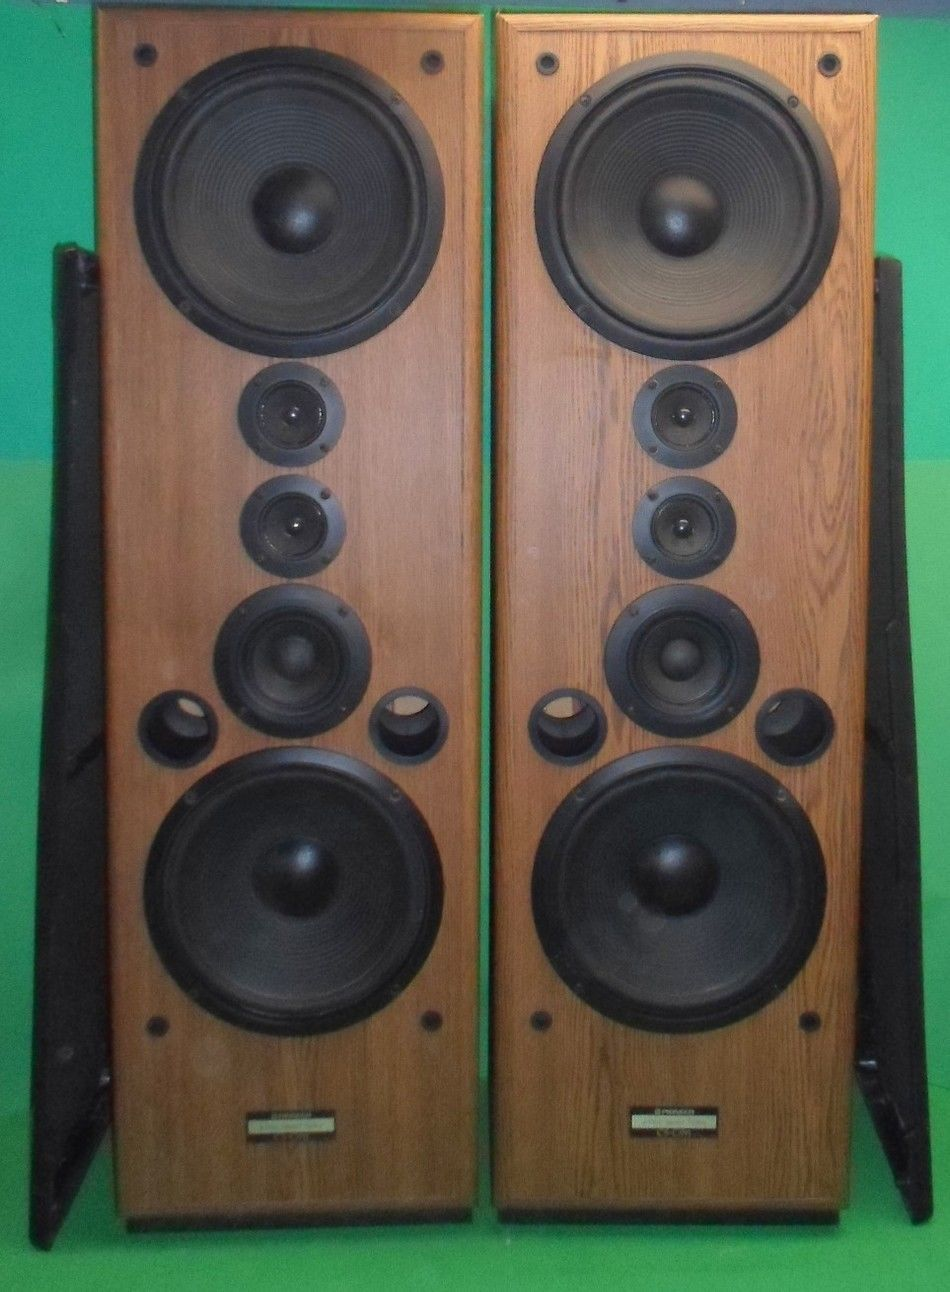 vintage pioneer cs c911 4 way speaker system pair good. Black Bedroom Furniture Sets. Home Design Ideas